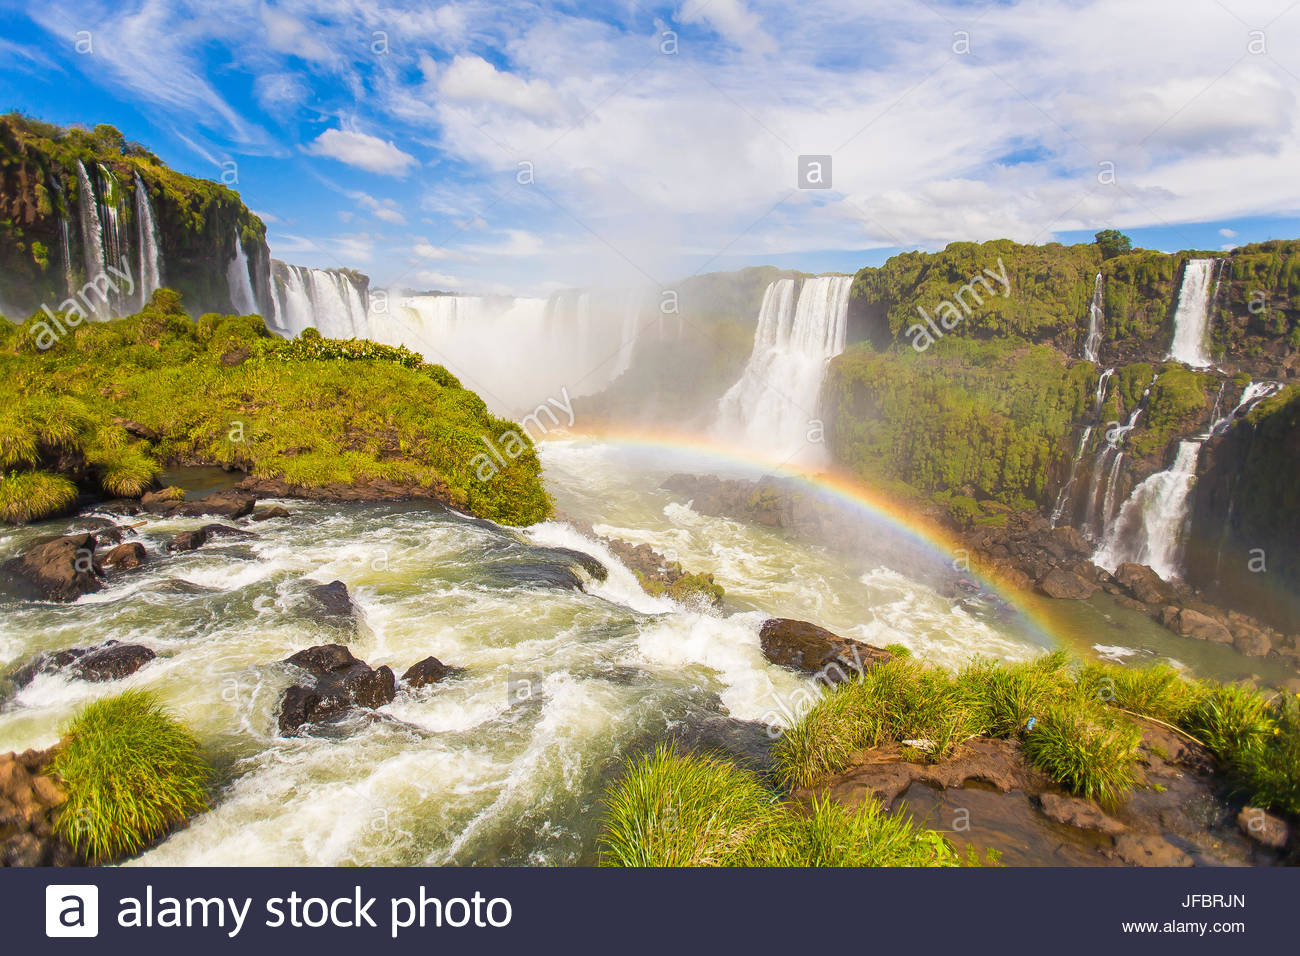 A rainbow at Iguazu waterfalls on the border of Argentina and Brazil in South America. Stock Photo